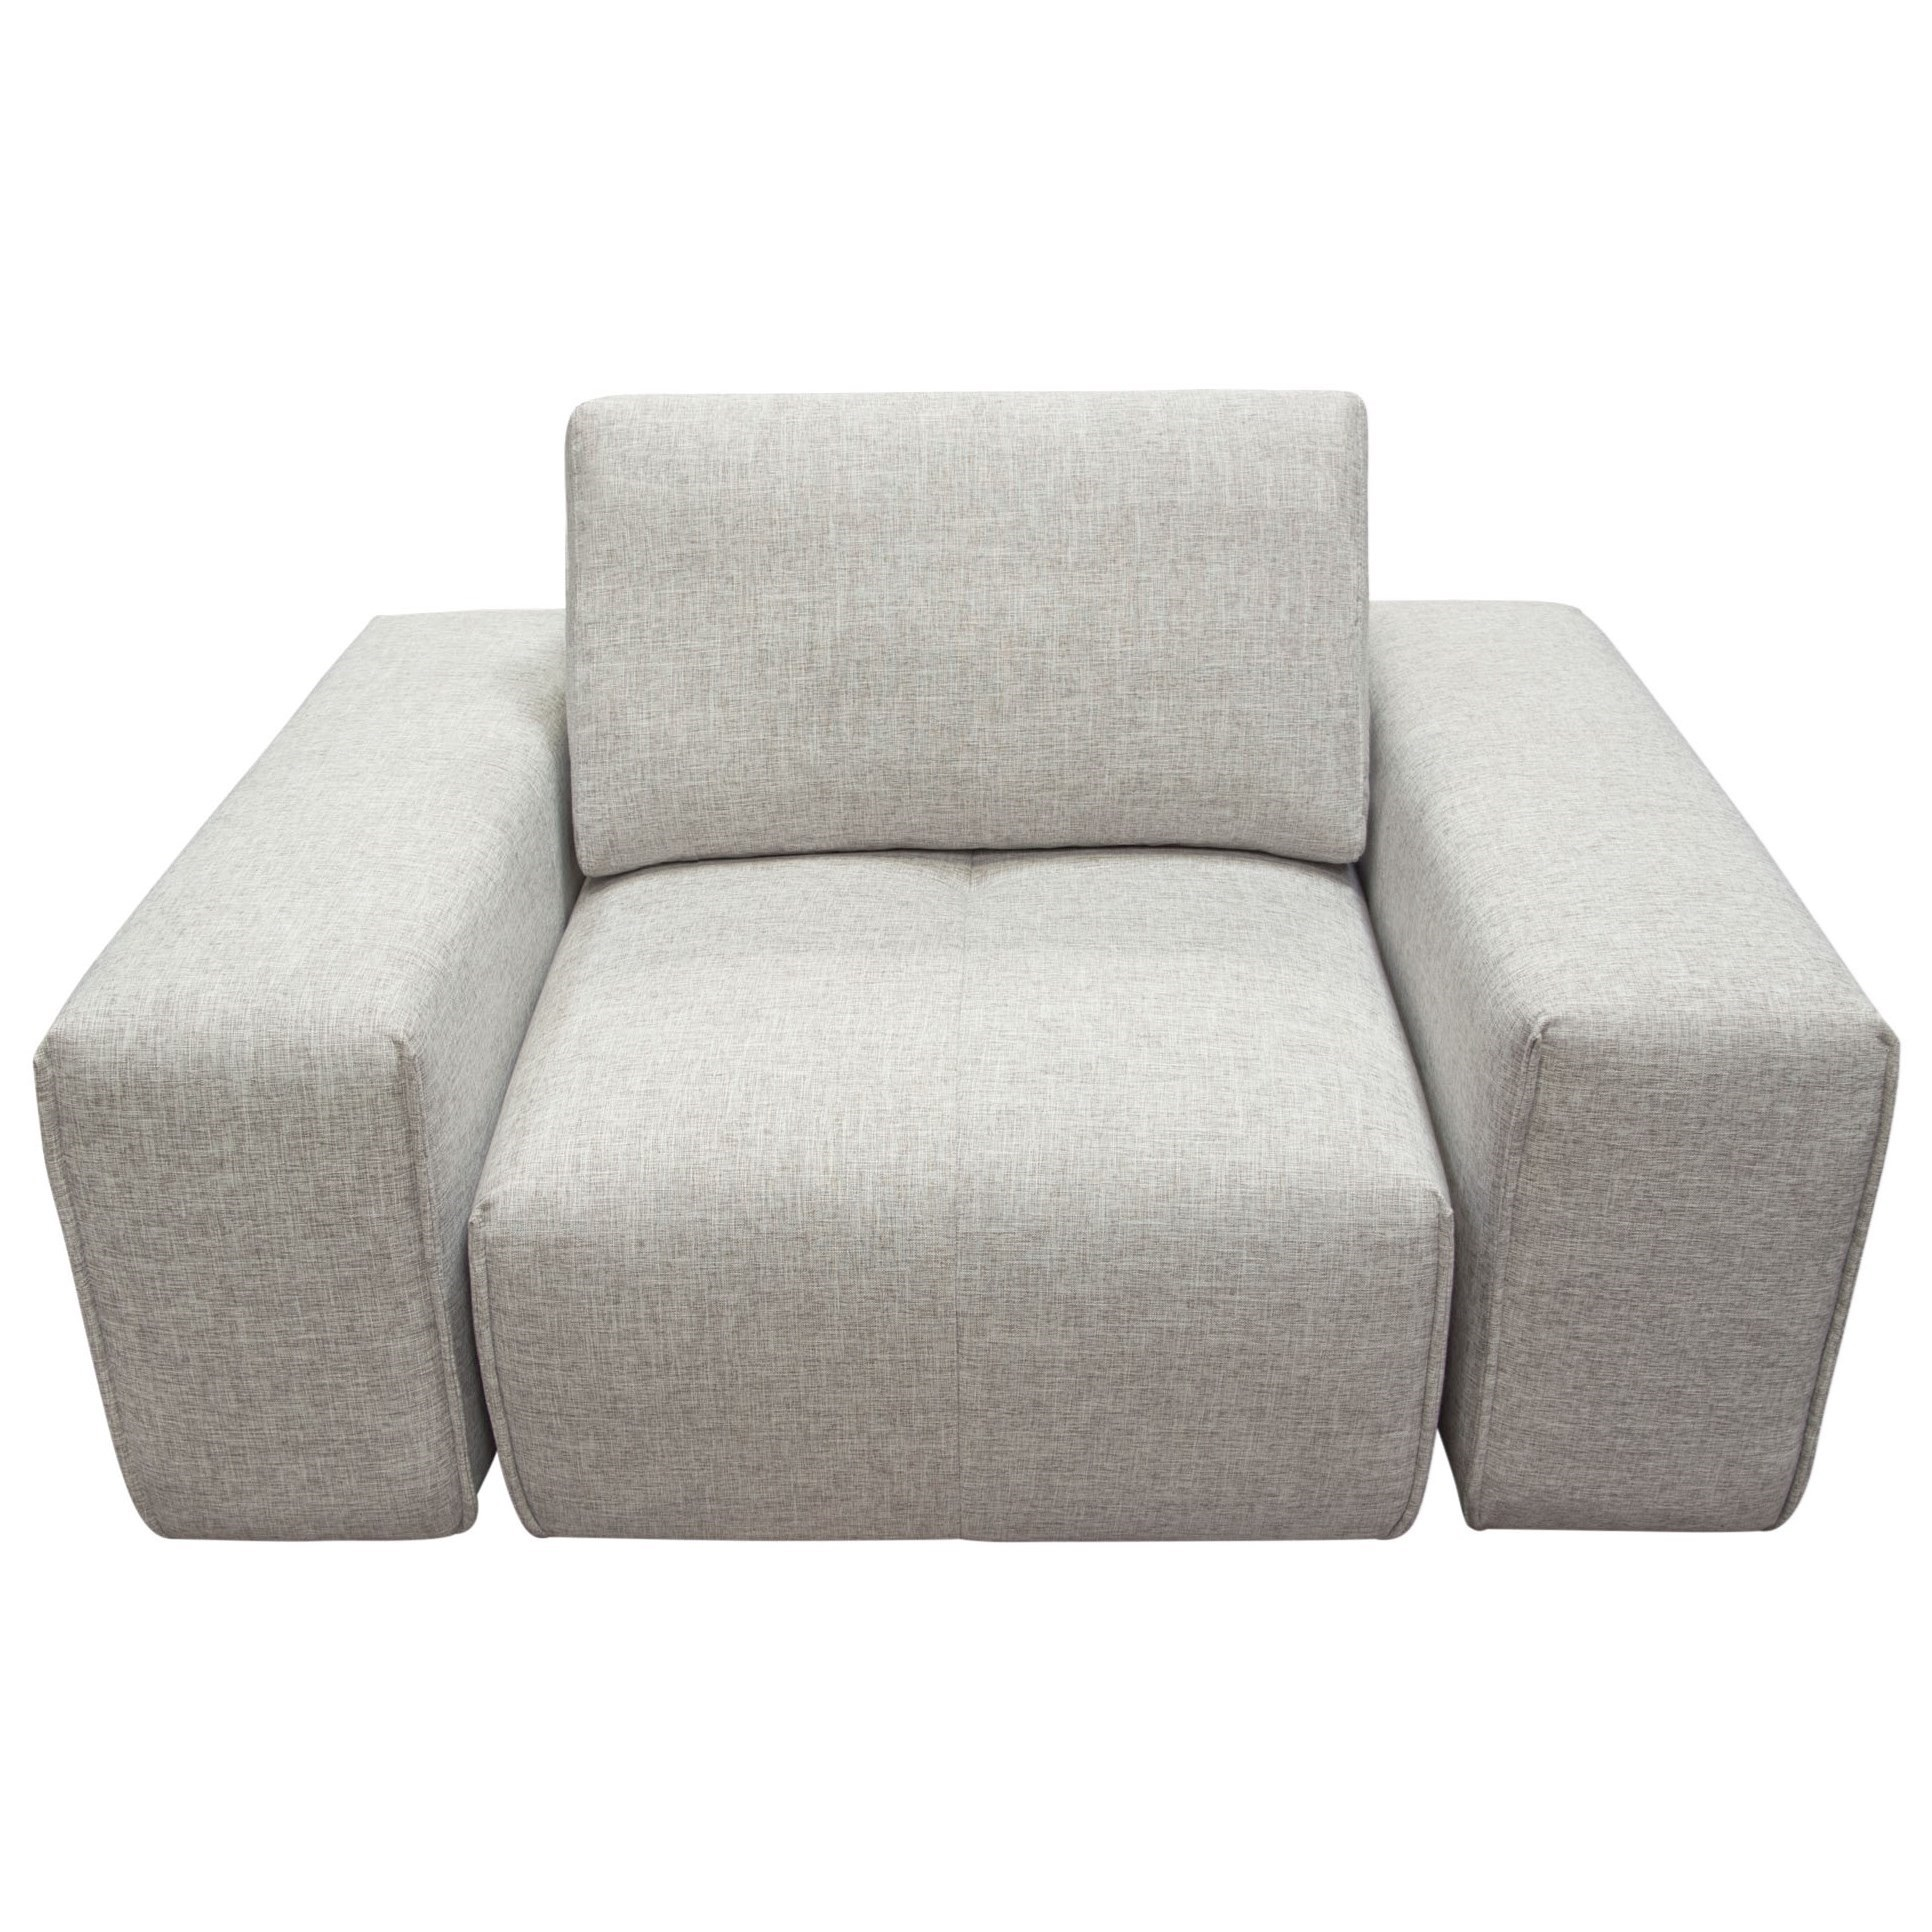 Jazz Chair by Diamond Sofa at HomeWorld Furniture